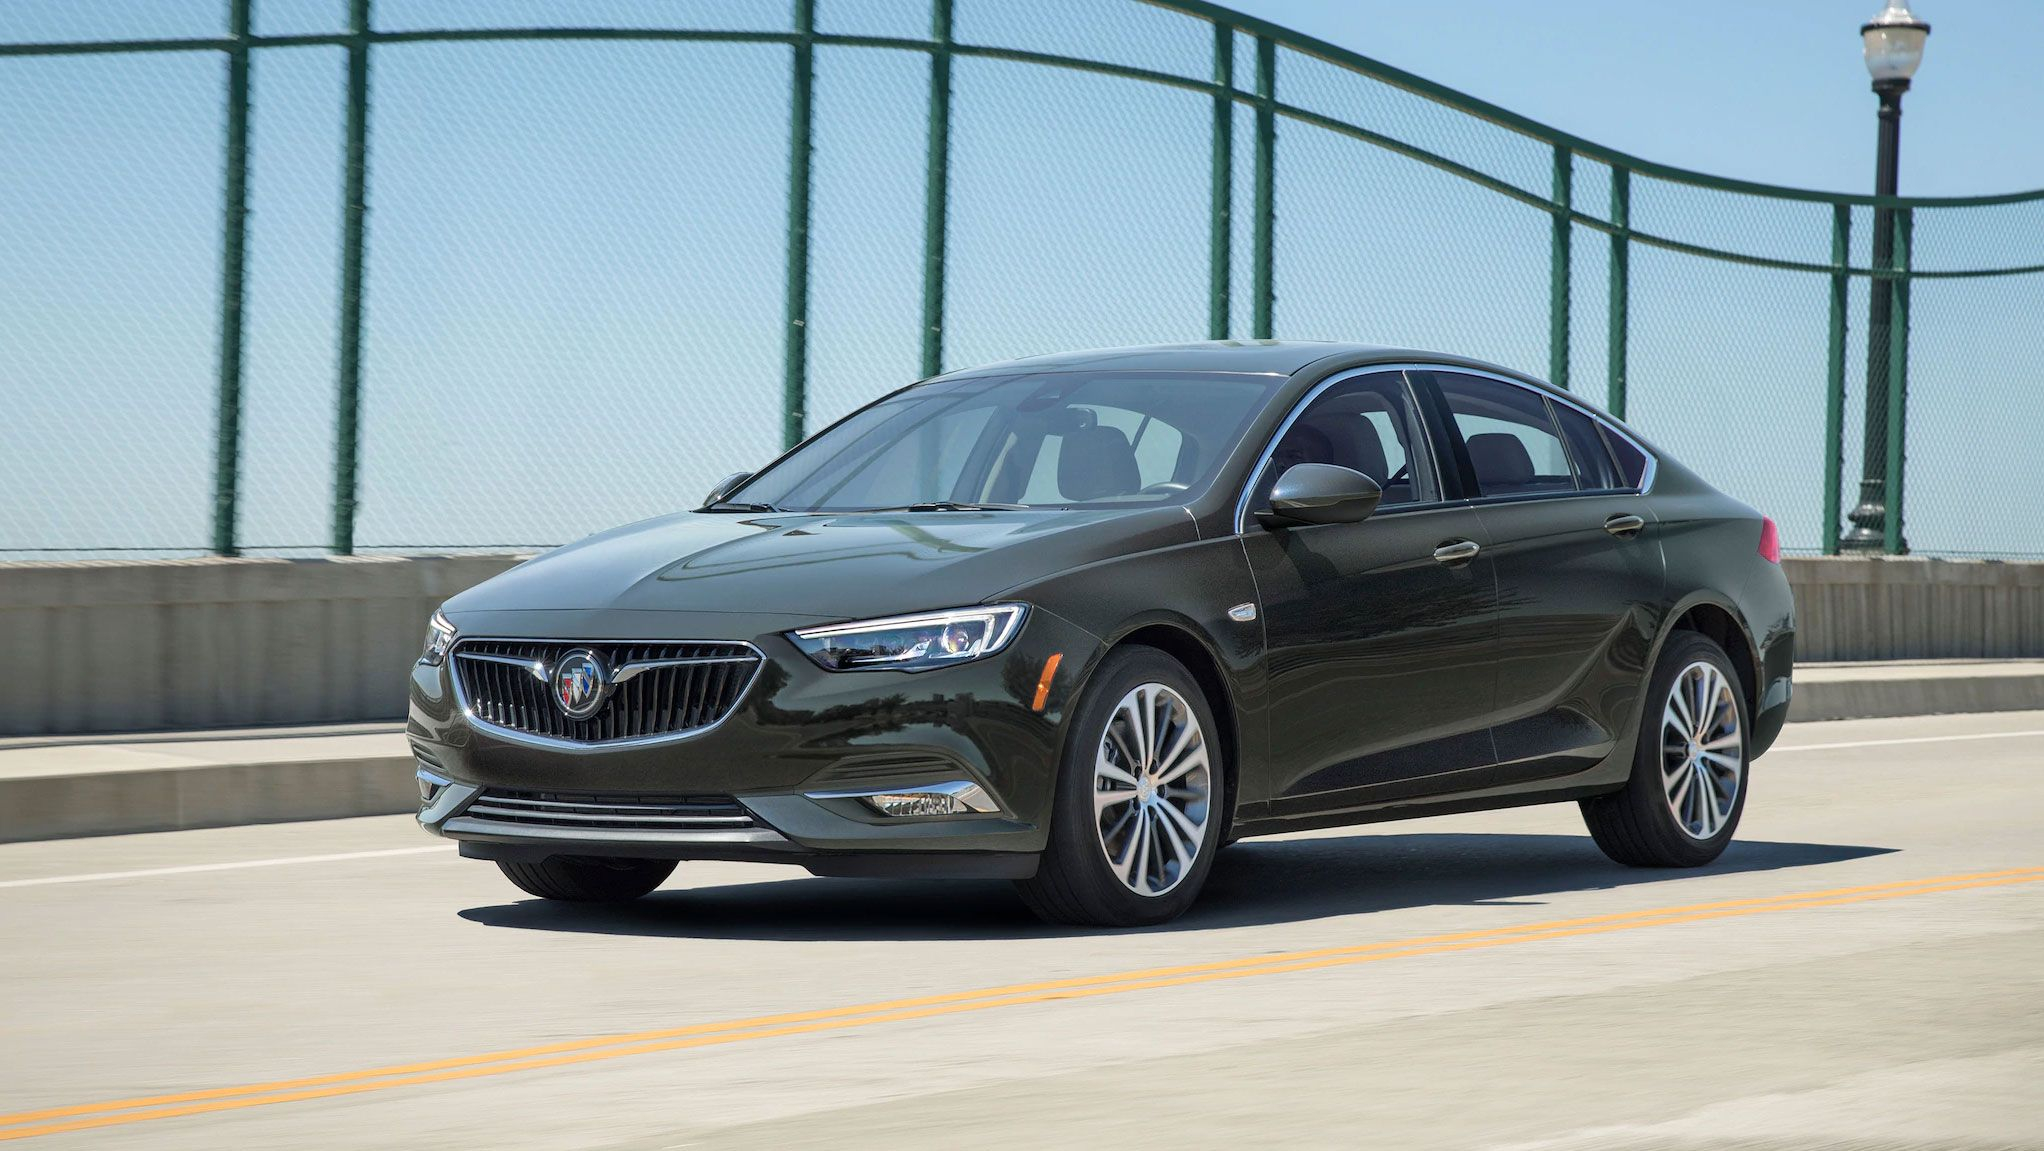 2020 Buick Regal Sportback Review, Pricing, And Specs 2021 Buick Regal Sportback Configurations, Ground Clearance, Release Date